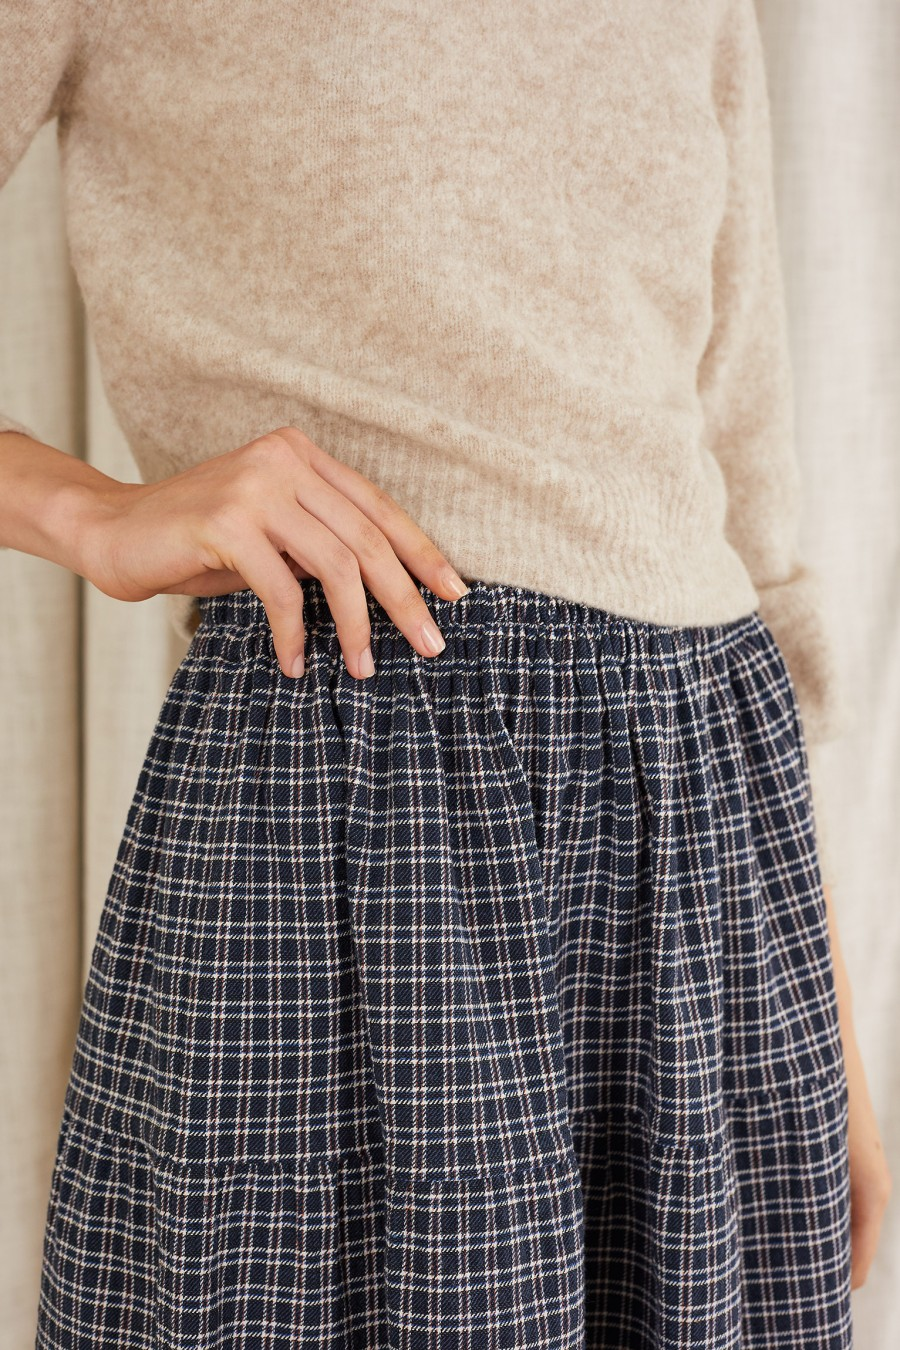 classic skirt for autumn